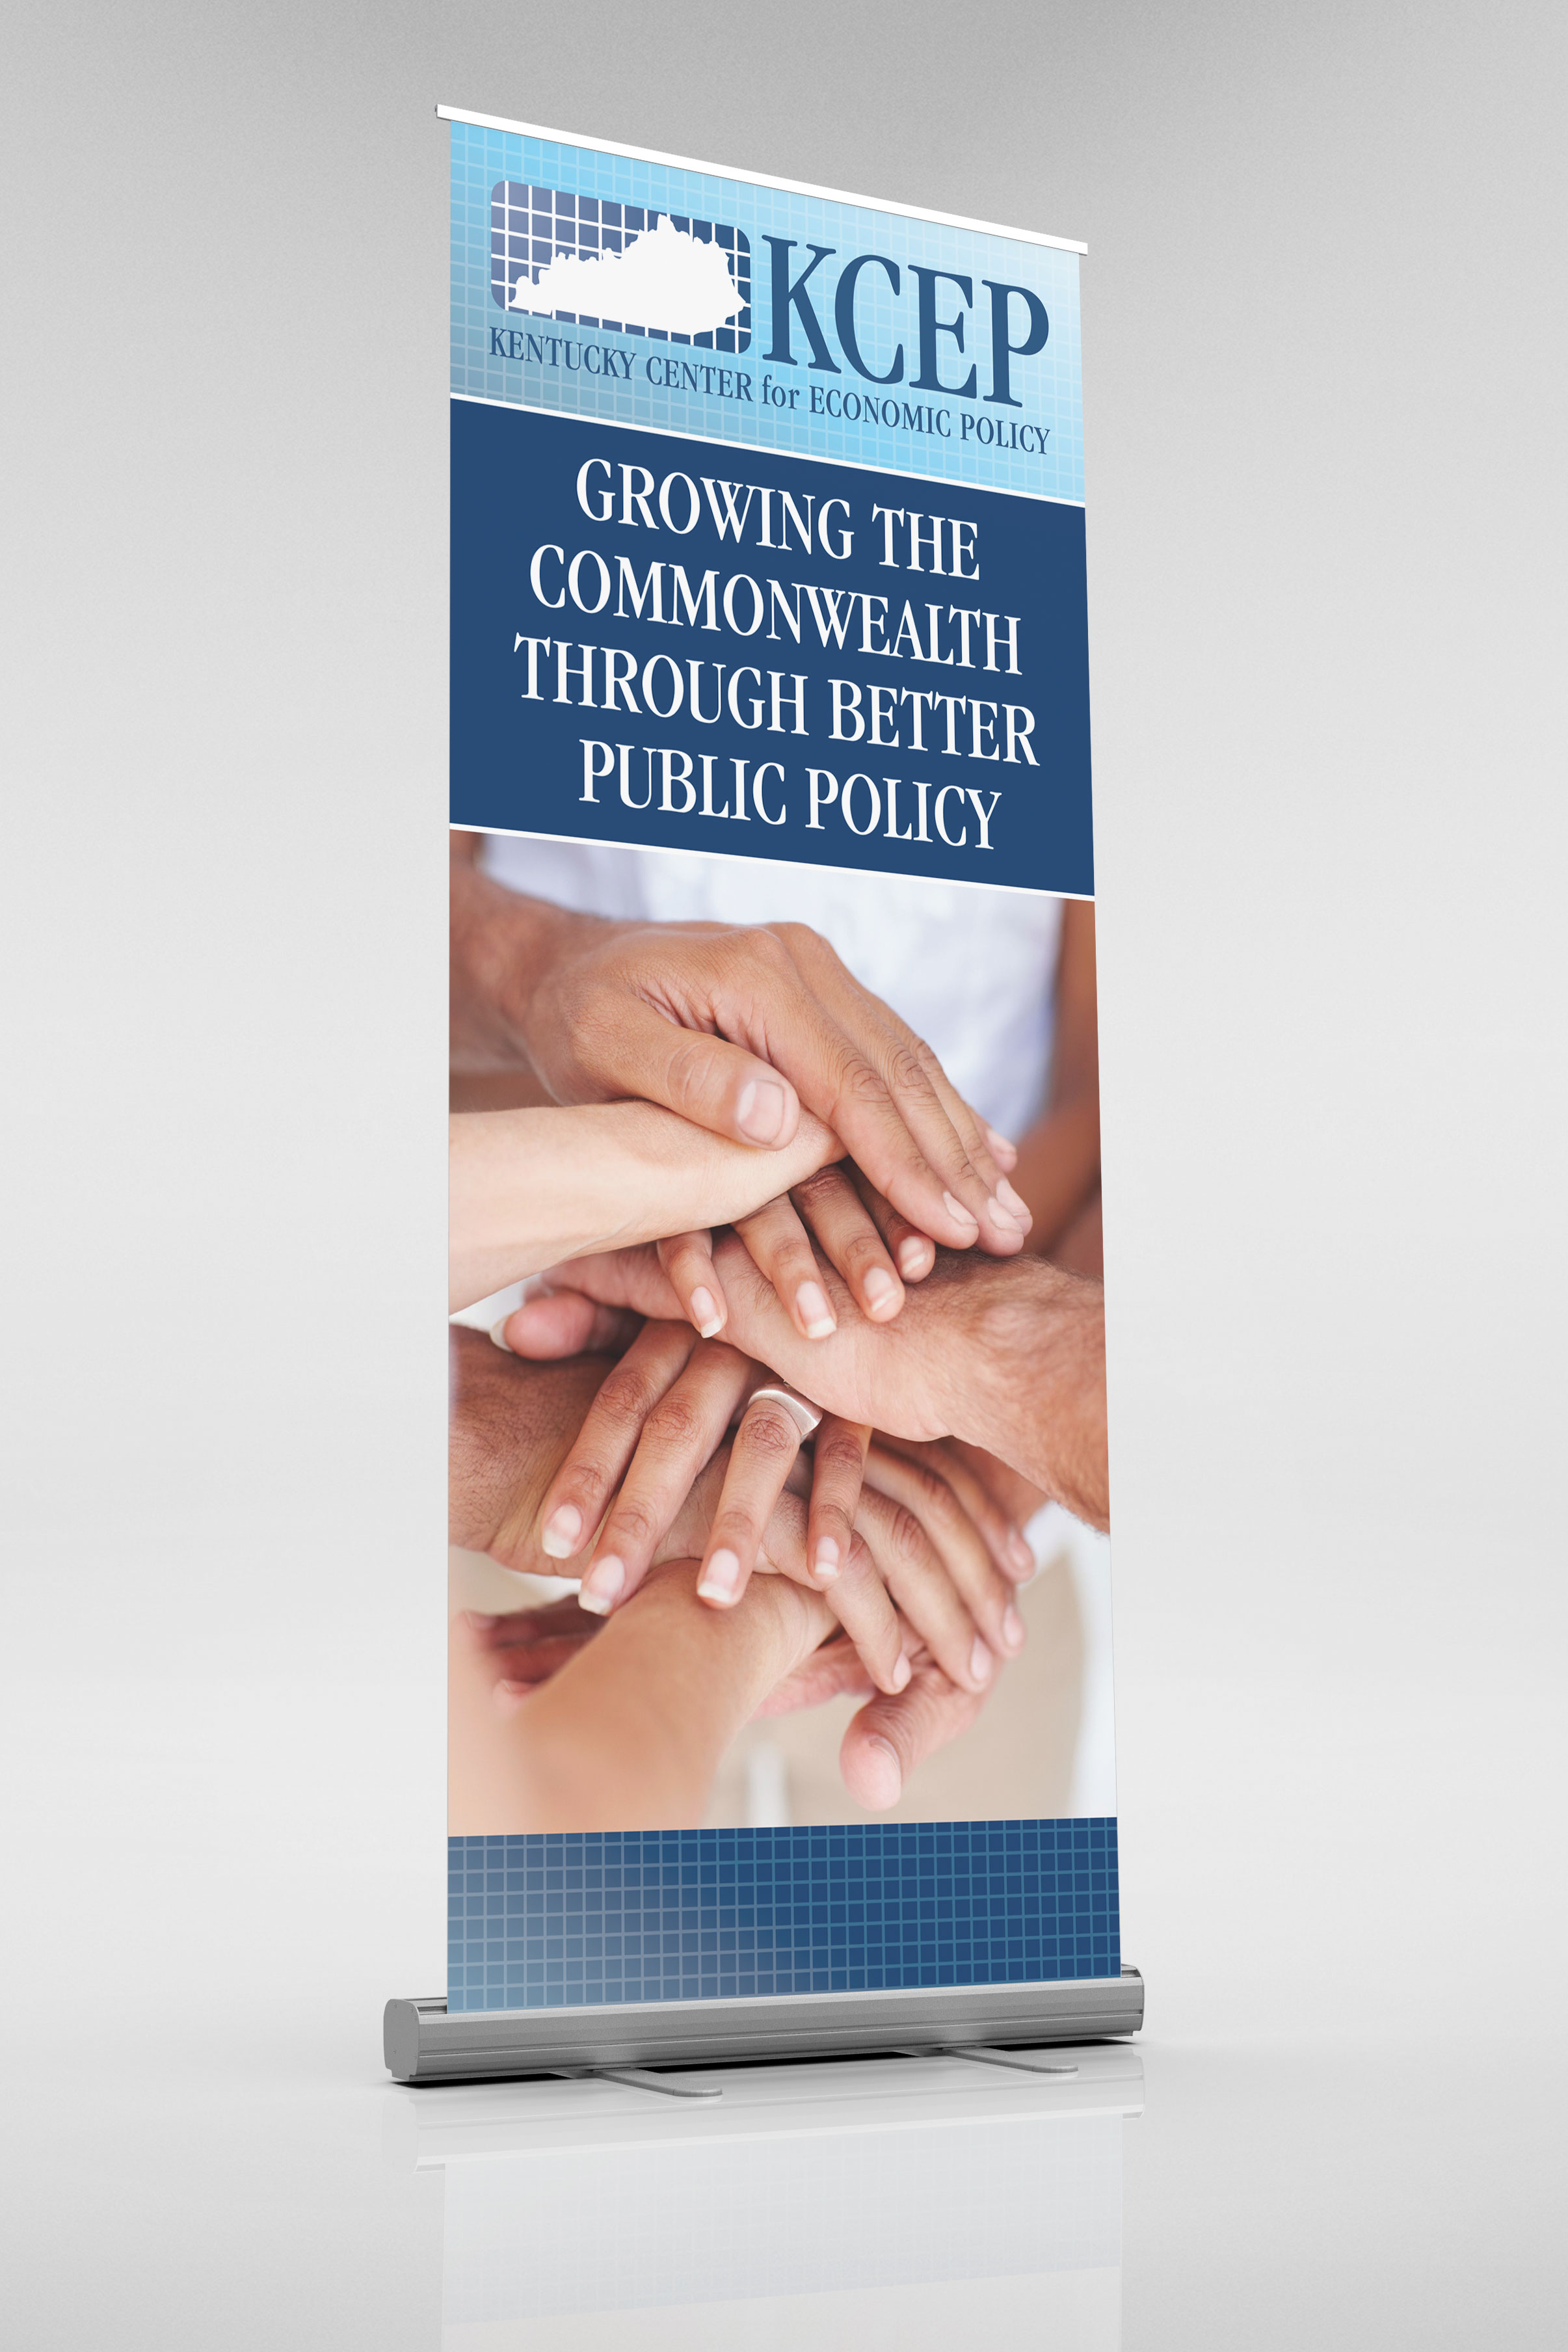 Roll-up banner for display at conferences or literature tables.